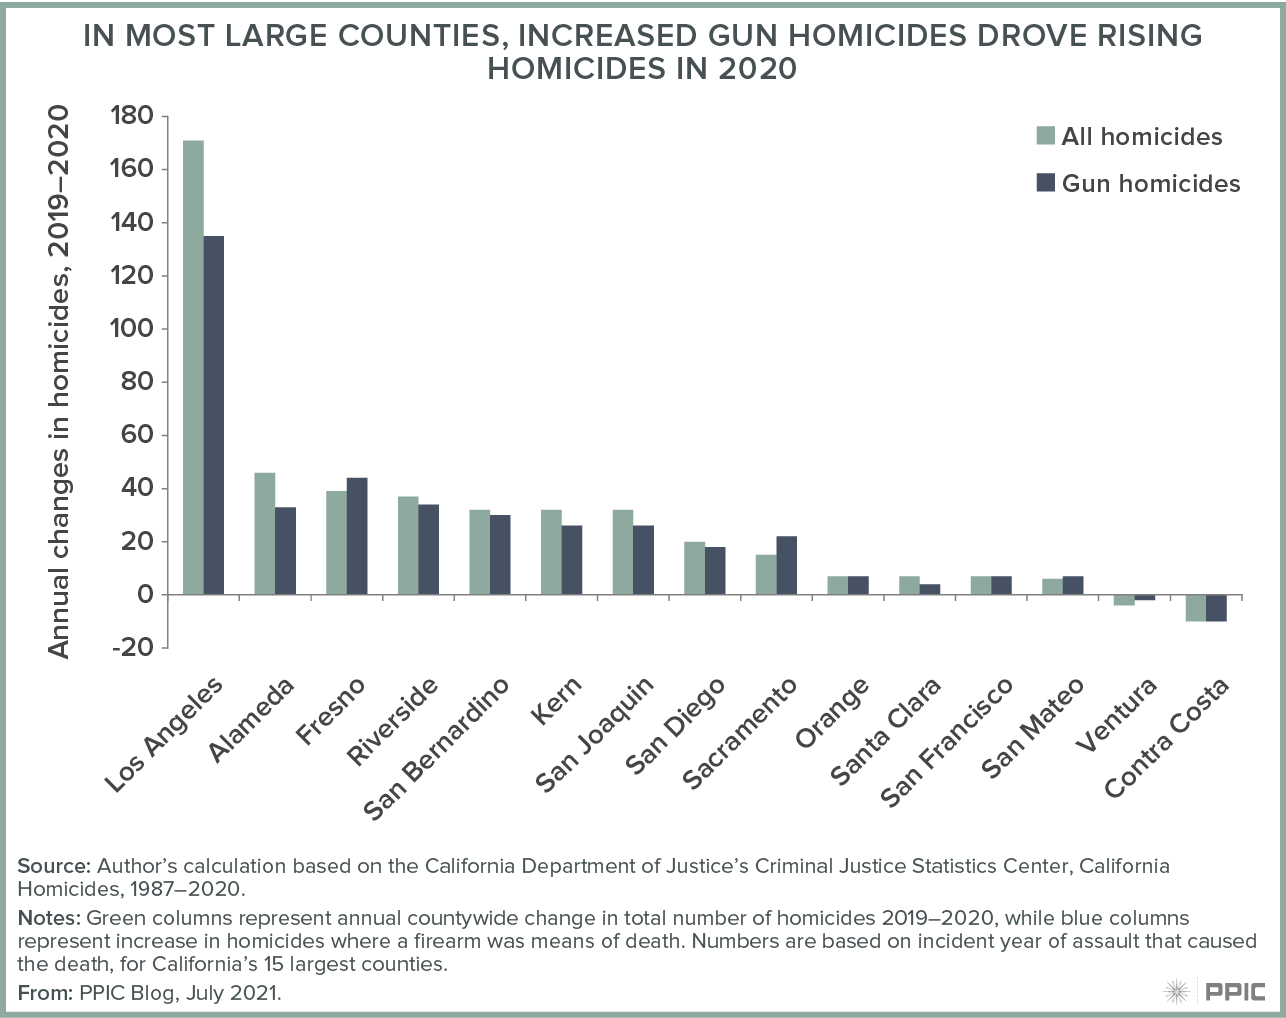 figure - In Most Large Counties, Increased Gun Homicides Drove Rising Homicides in 2020